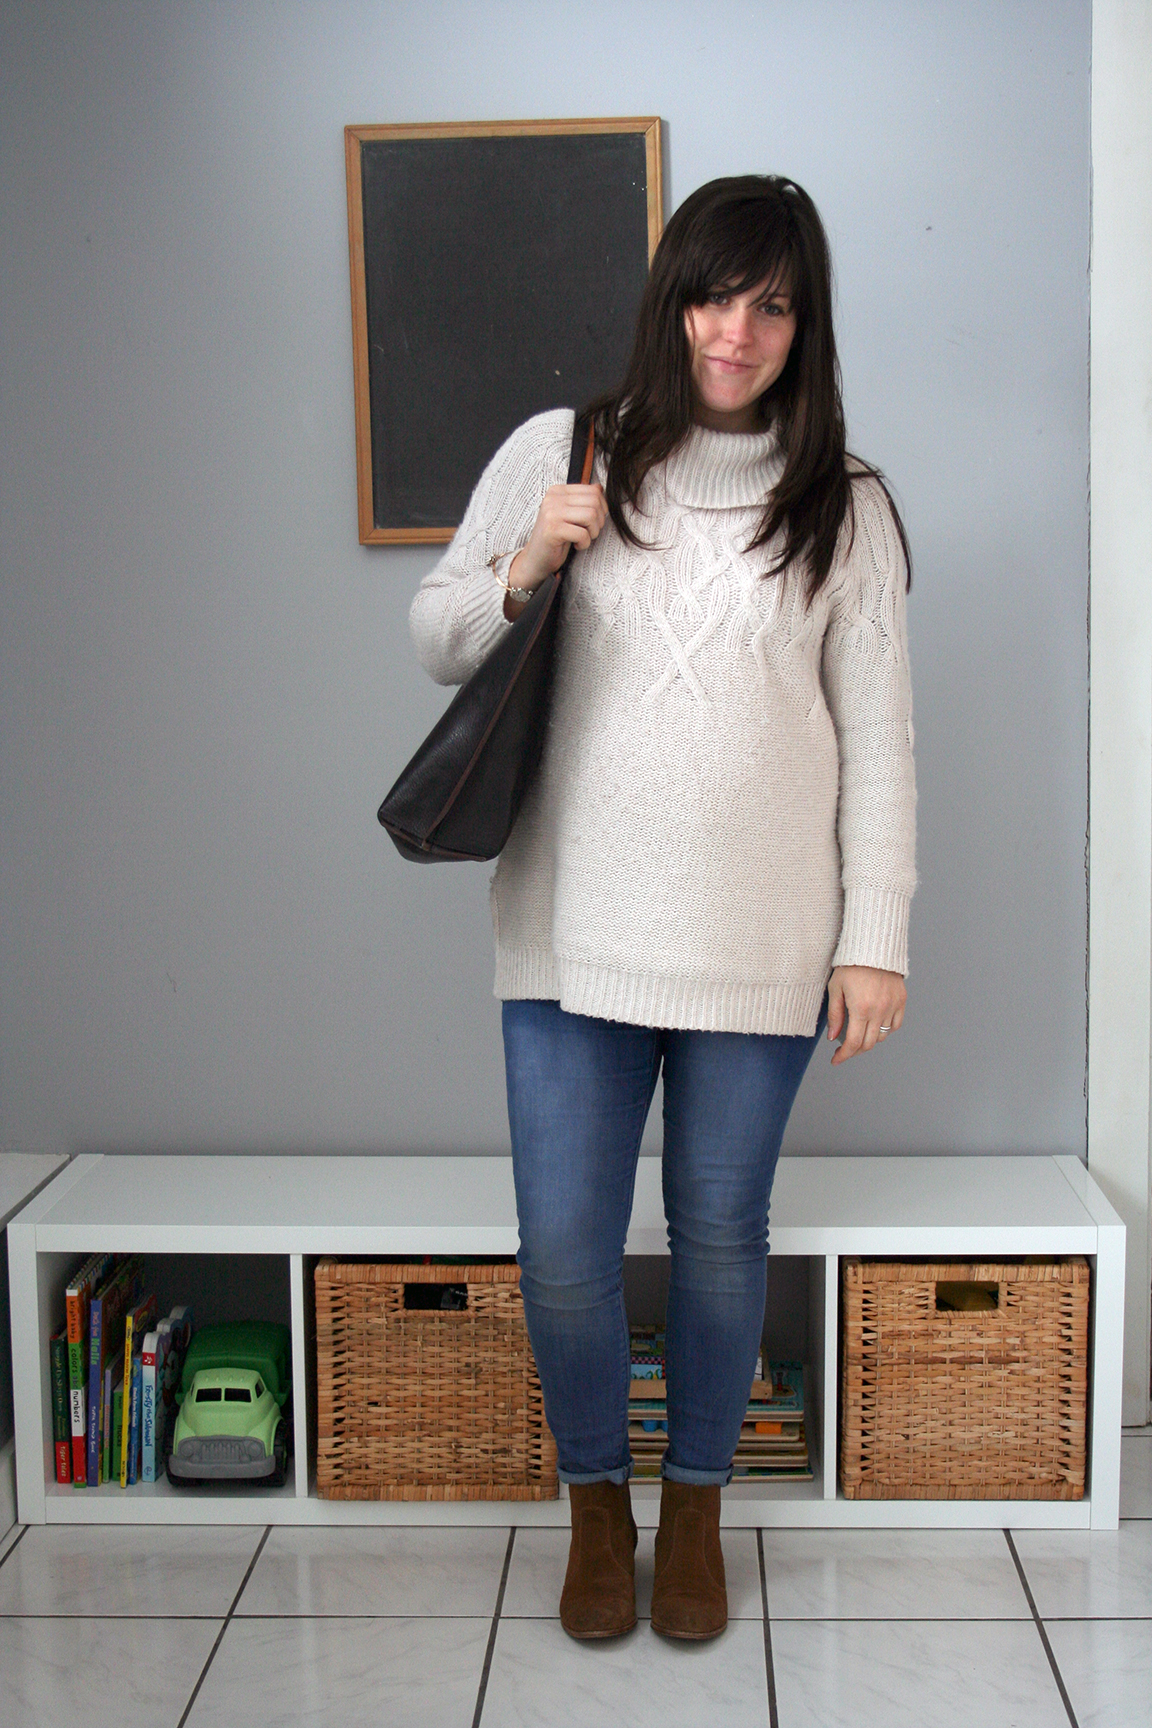 Confessions of a capsule wardrobe wearer + my plans for 2015